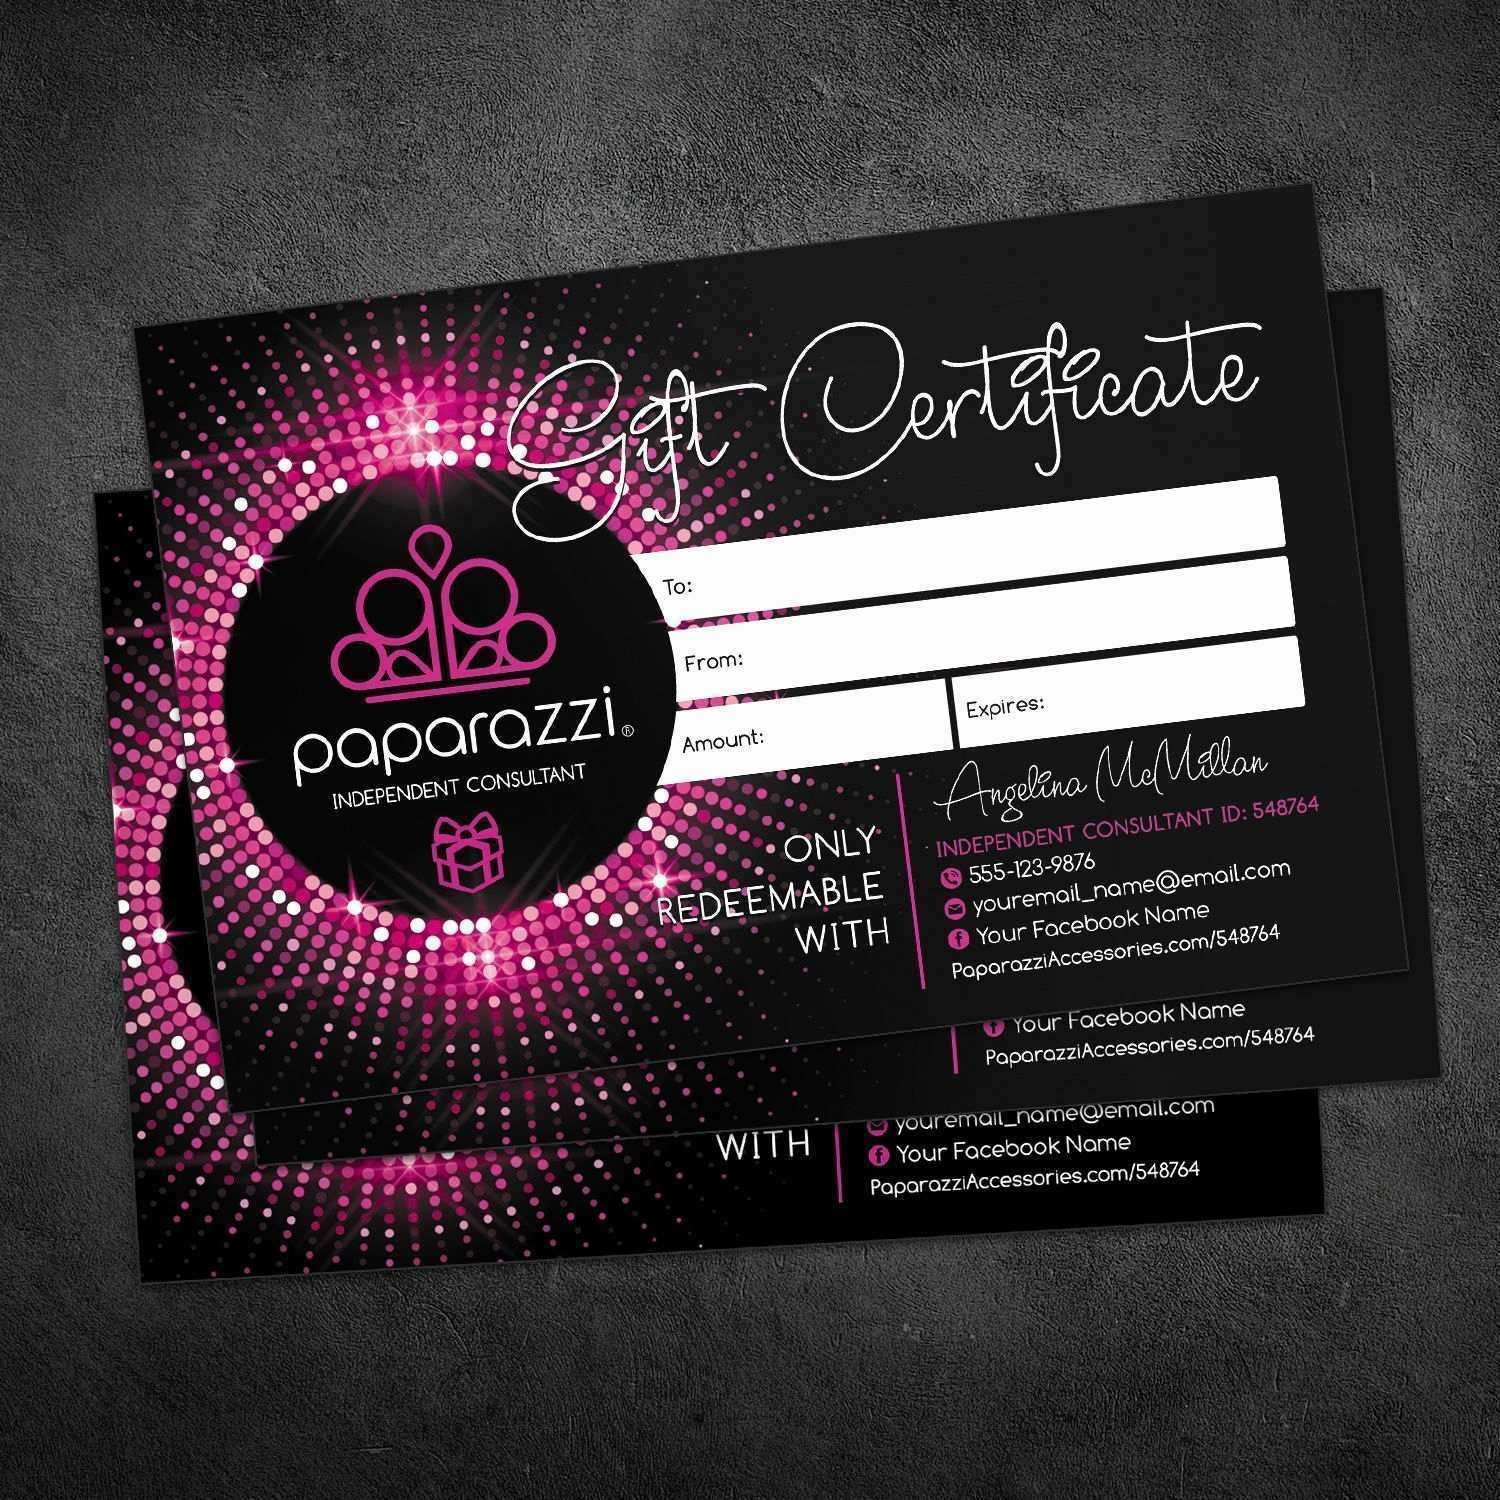 Polka Dot Business Card Templates Free Paparazzi Accessories Business Card Template Inspirat Paparazzi Gifts Free Business Card Templates Jewelry Business Card